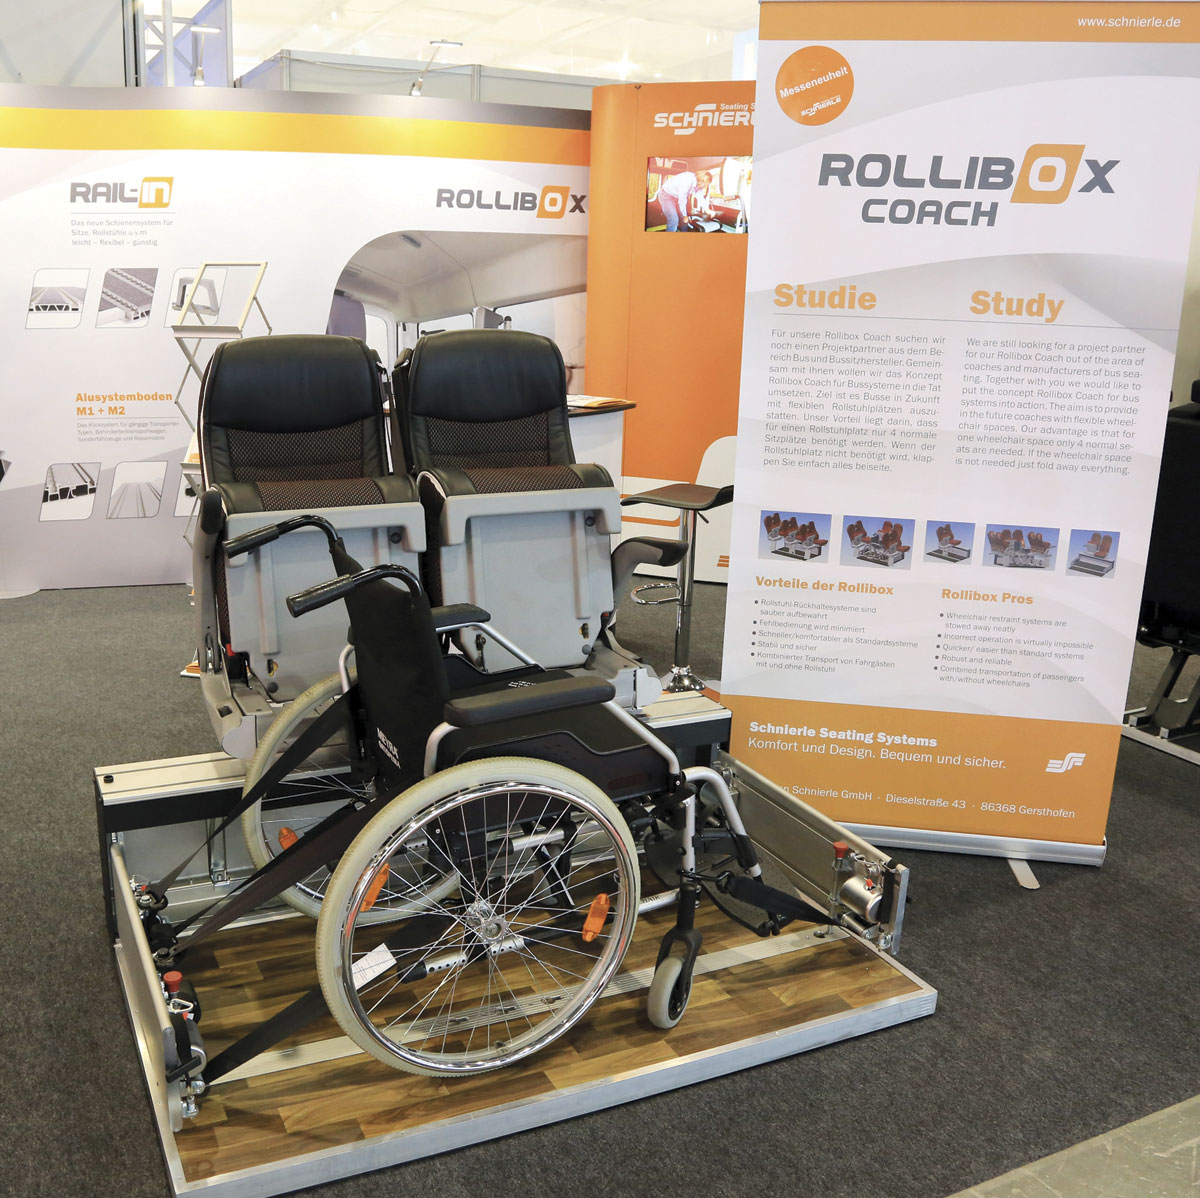 Rollibox concept for coach from Schnierle Seating Systems.